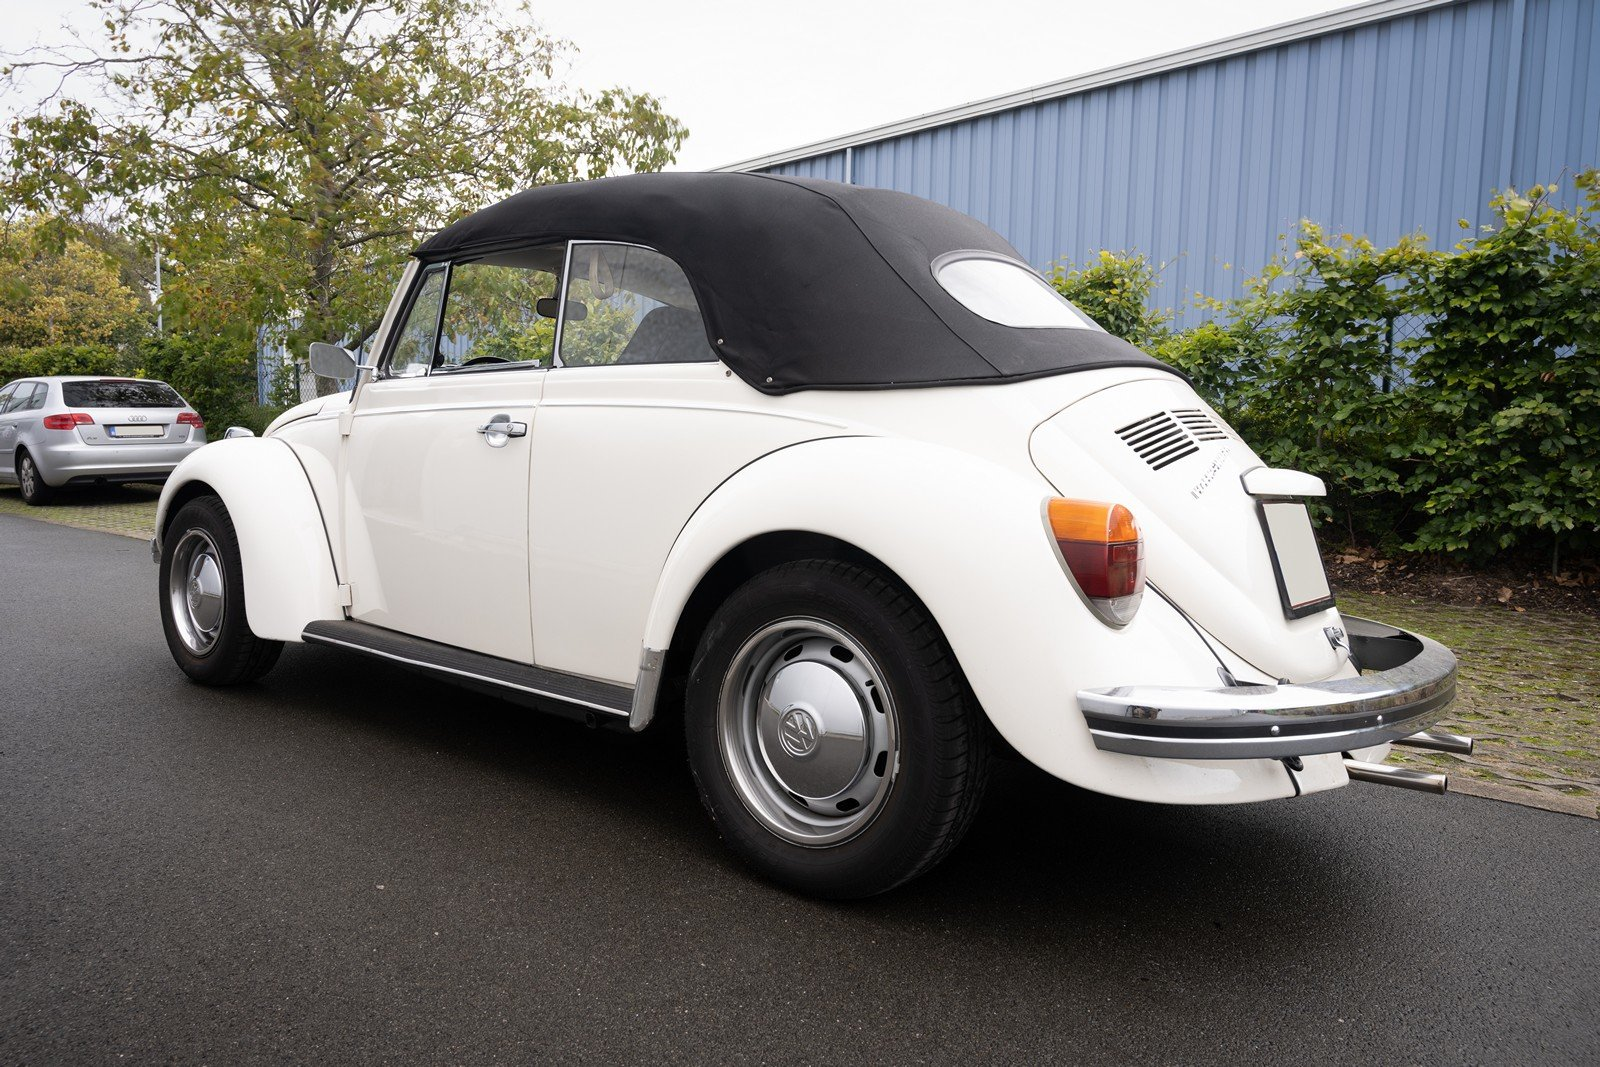 1973 Volkswagen Beetle Type 1303 Cabriolet For Sale (picture 12 of 39)